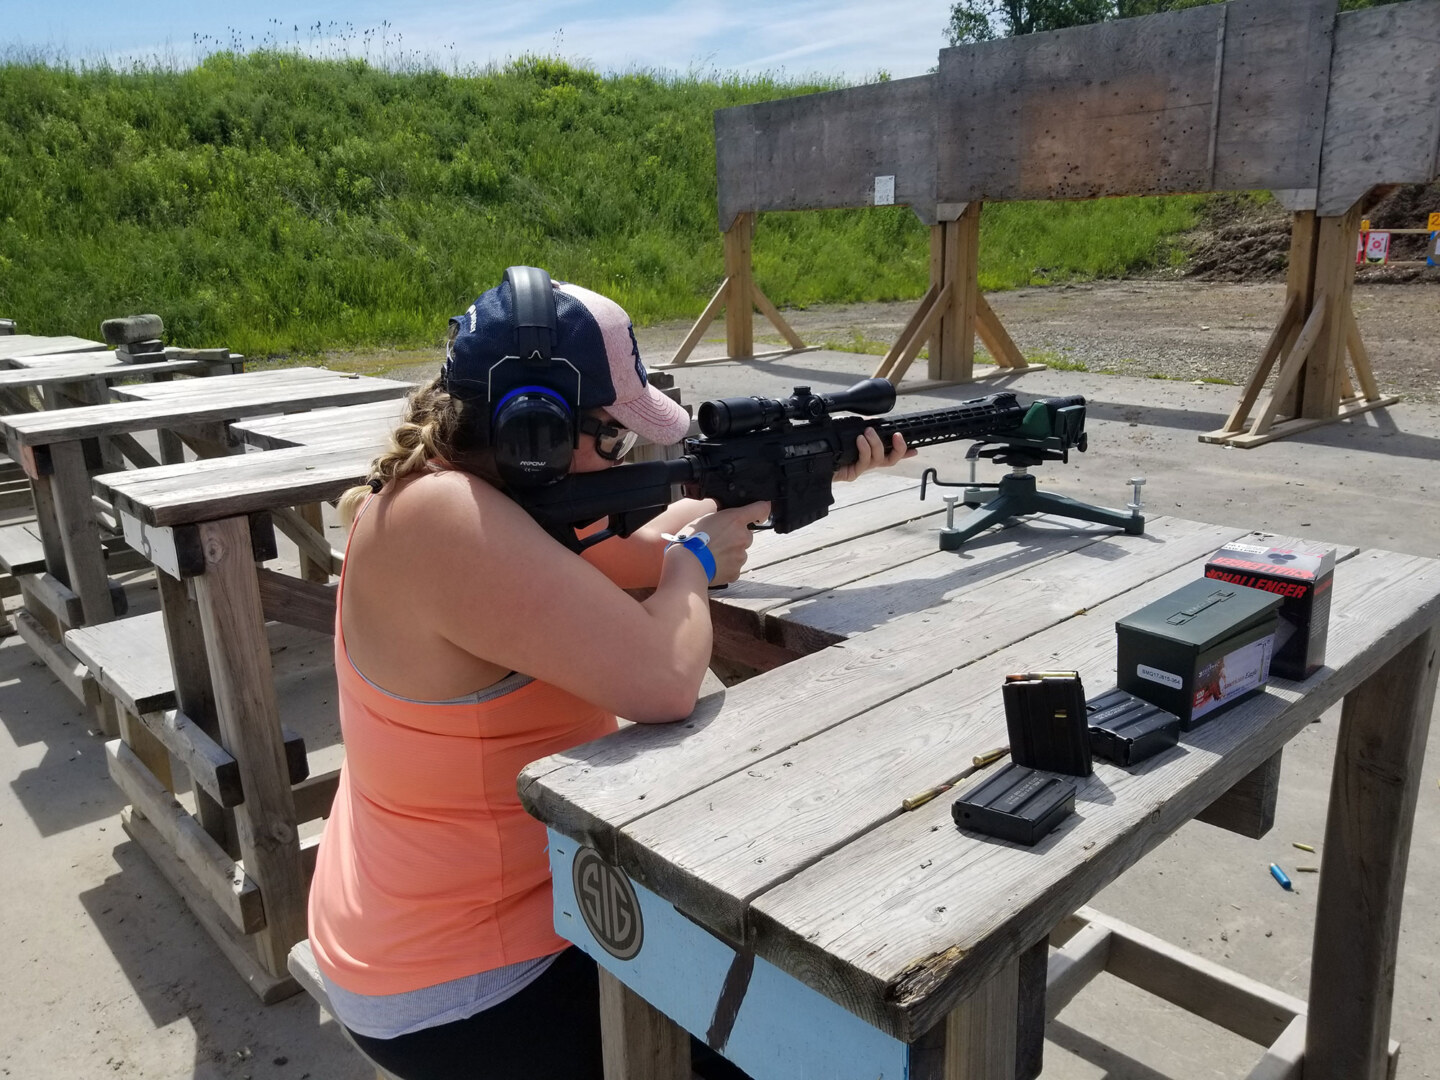 Firearms_Stag_Woman